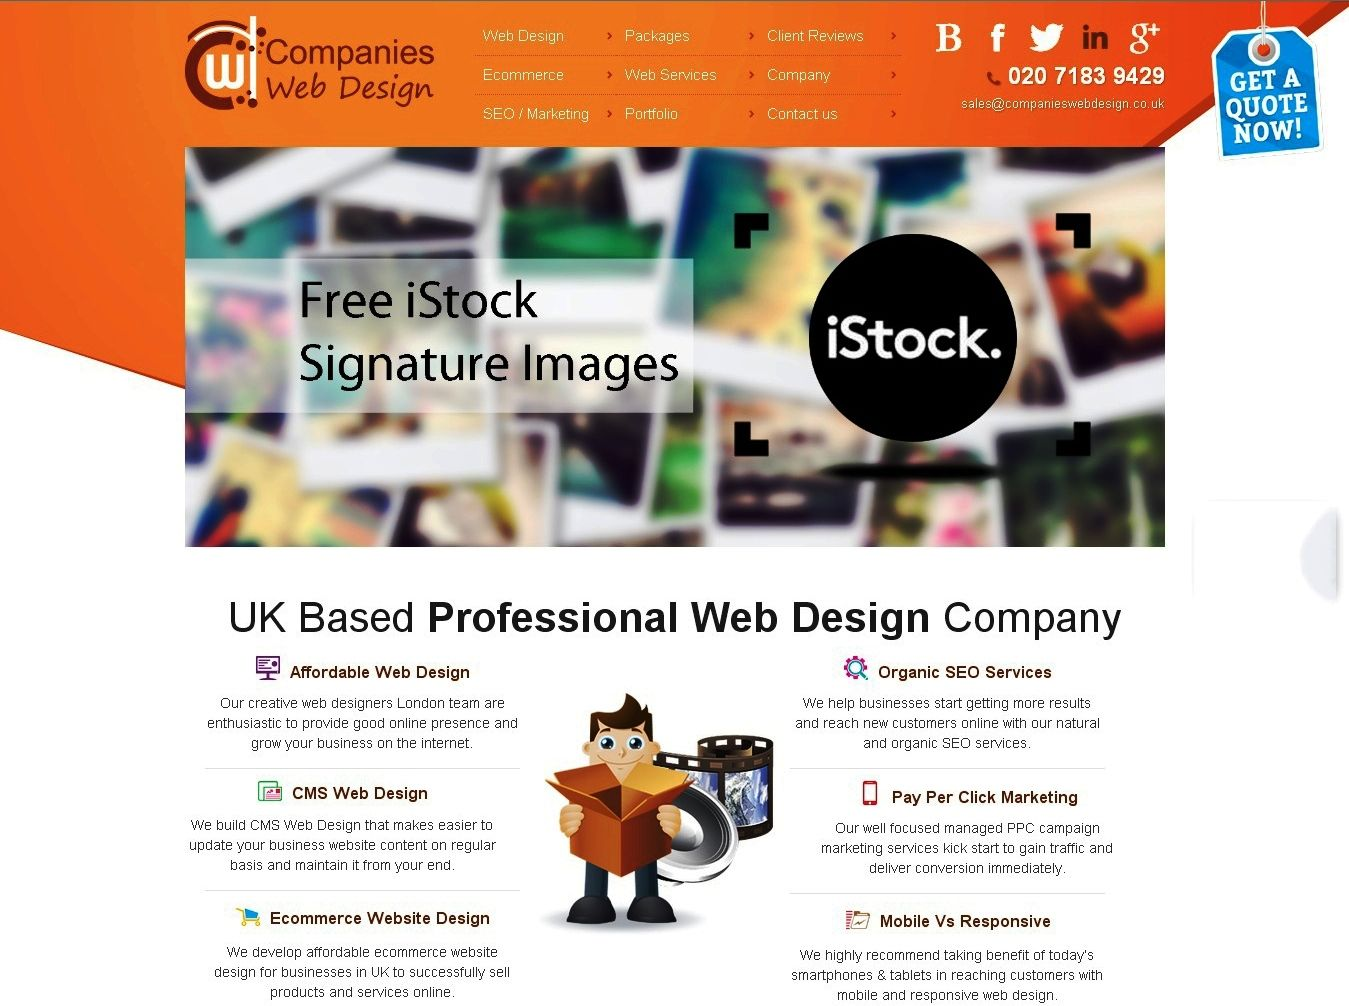 Companies Web Design Reduces Their Cheap Ecommerce Website Designs Costs Web Design Company Ecommerce Website Design Web Design